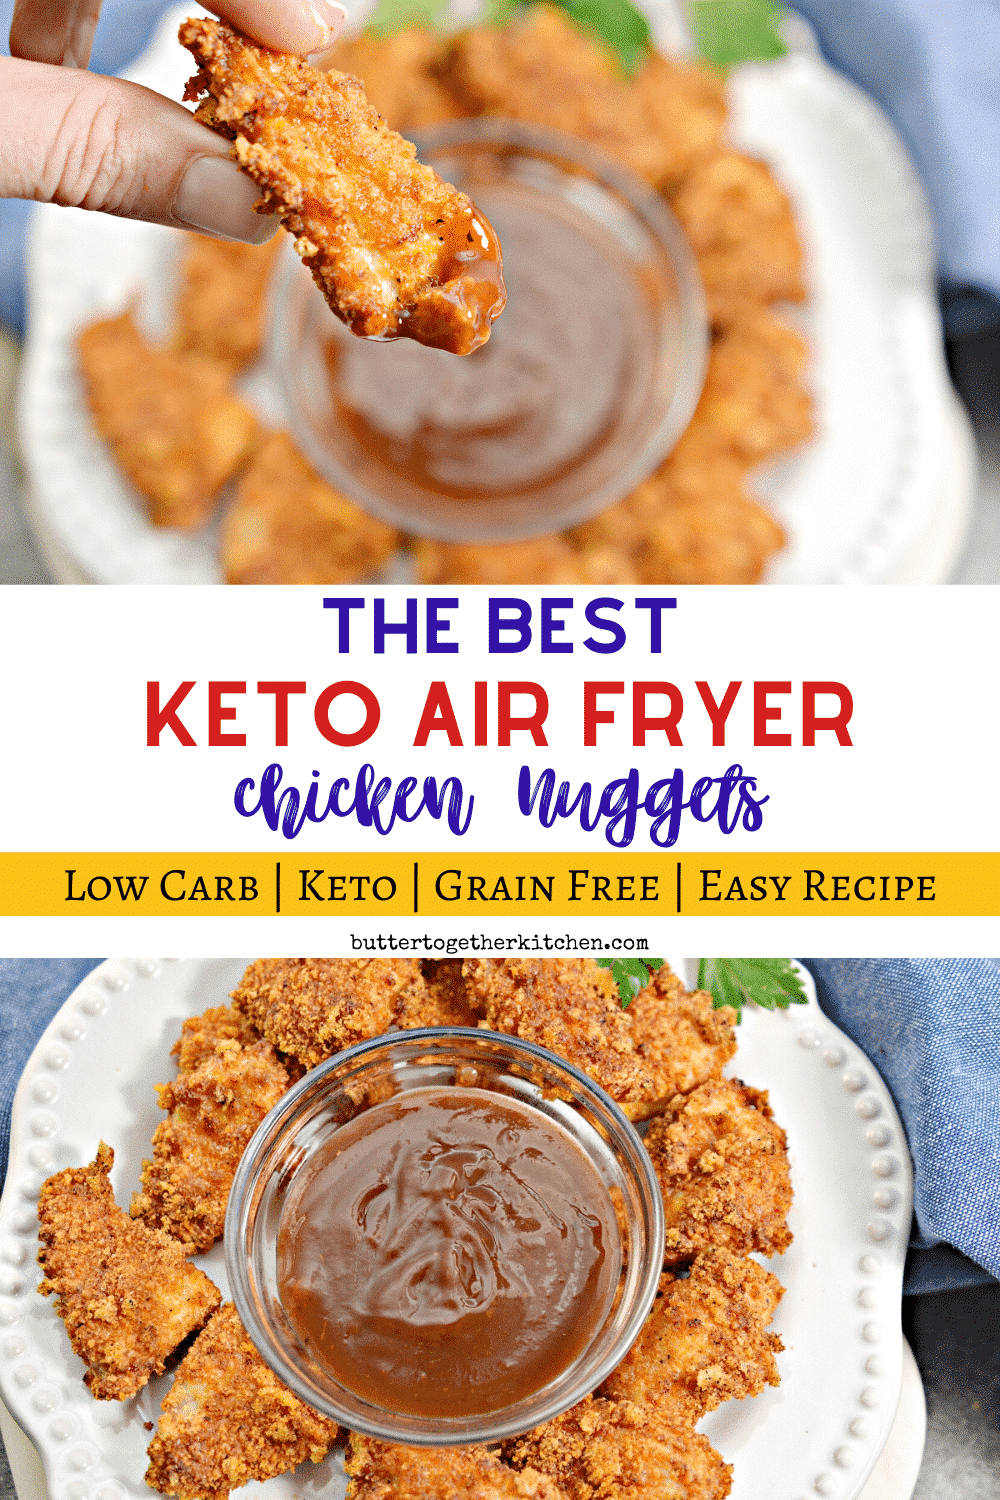 These Air Fryer Keto Chicken Nuggets are SO juicy, crispy, and delicious! You will love this quick and delicious meal. @perduefarms #PerdueFarmsFarmtoHome #PerdueFarms_Partner #AD #ketochickennuggets #ketoairfryerchicken #ketoairfryerchickennuggets